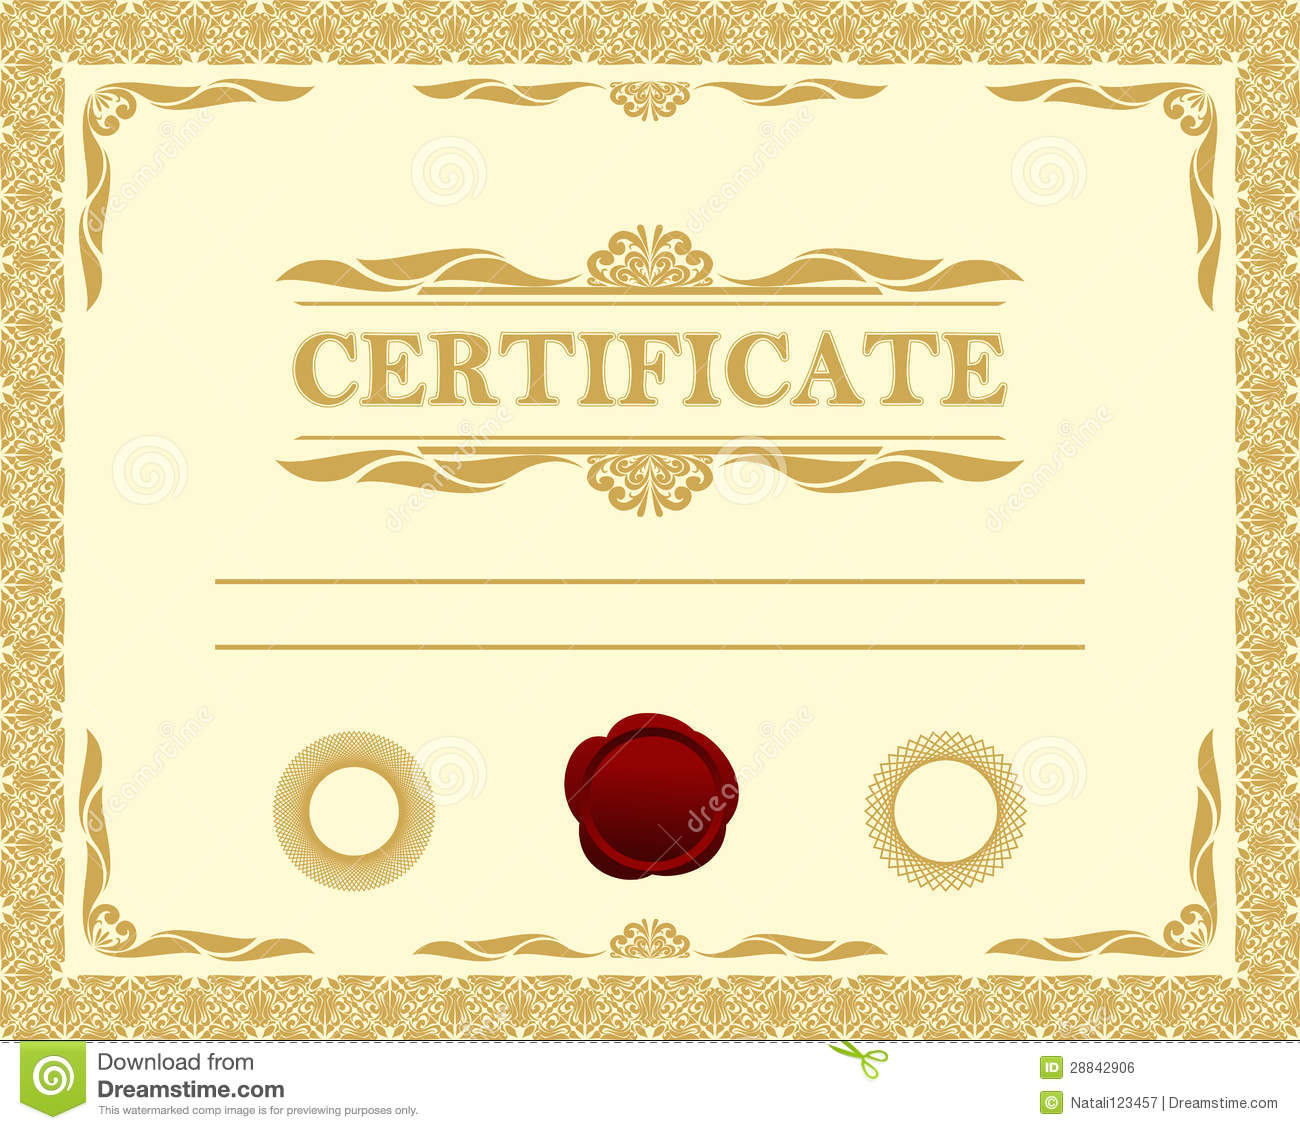 print gift certificate free